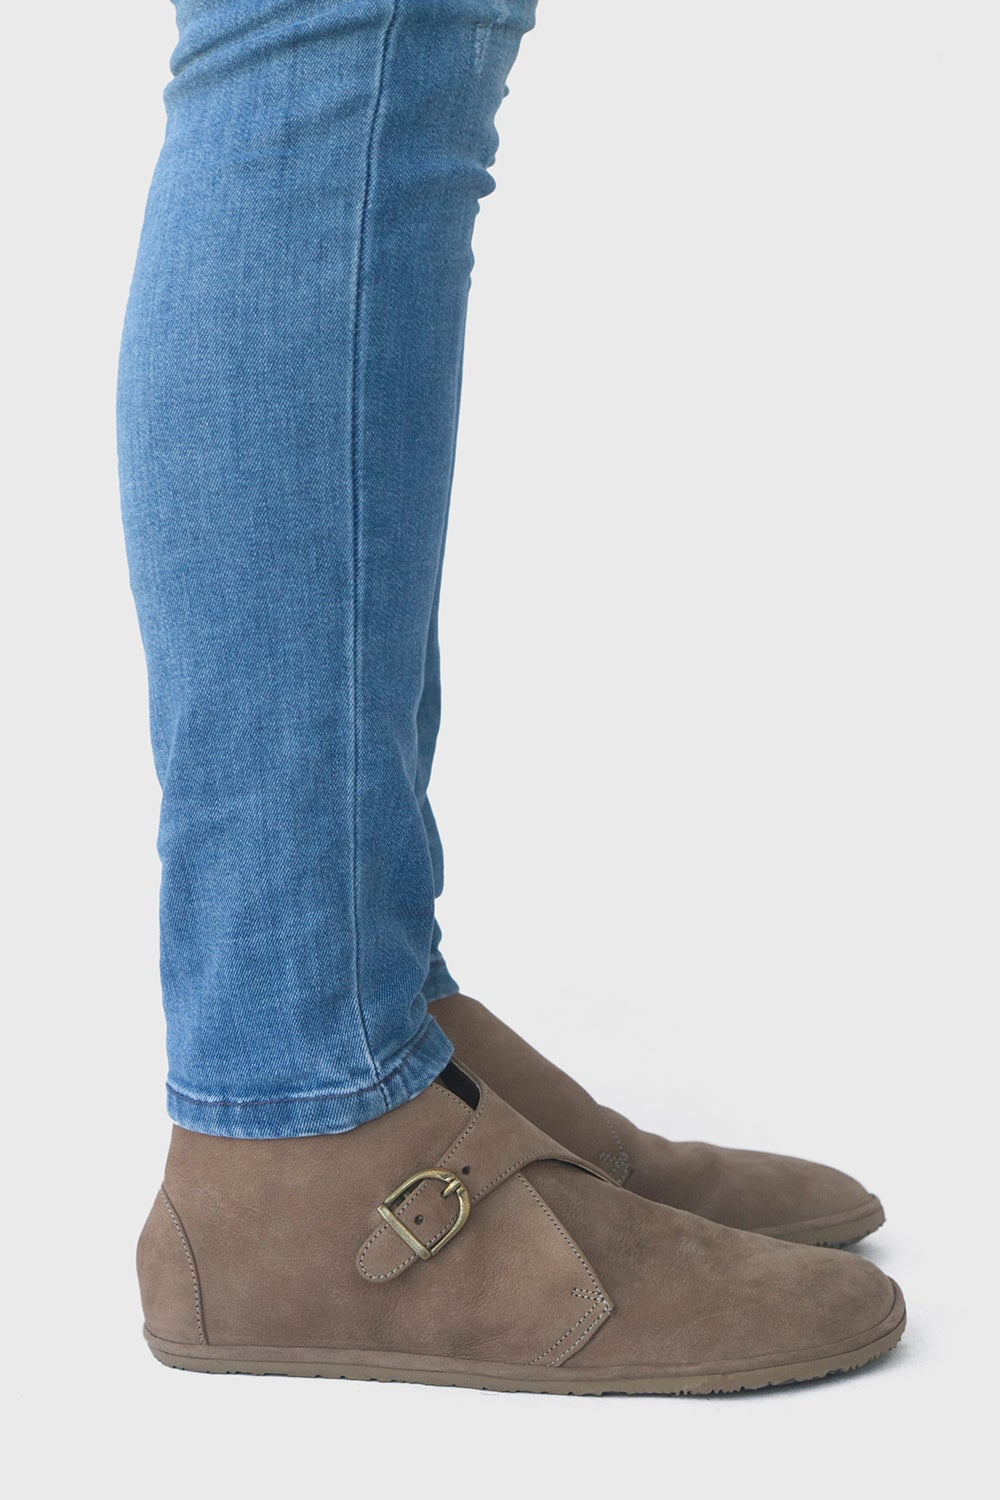 Image of Mono - Monk boots in Taupe Nubuck